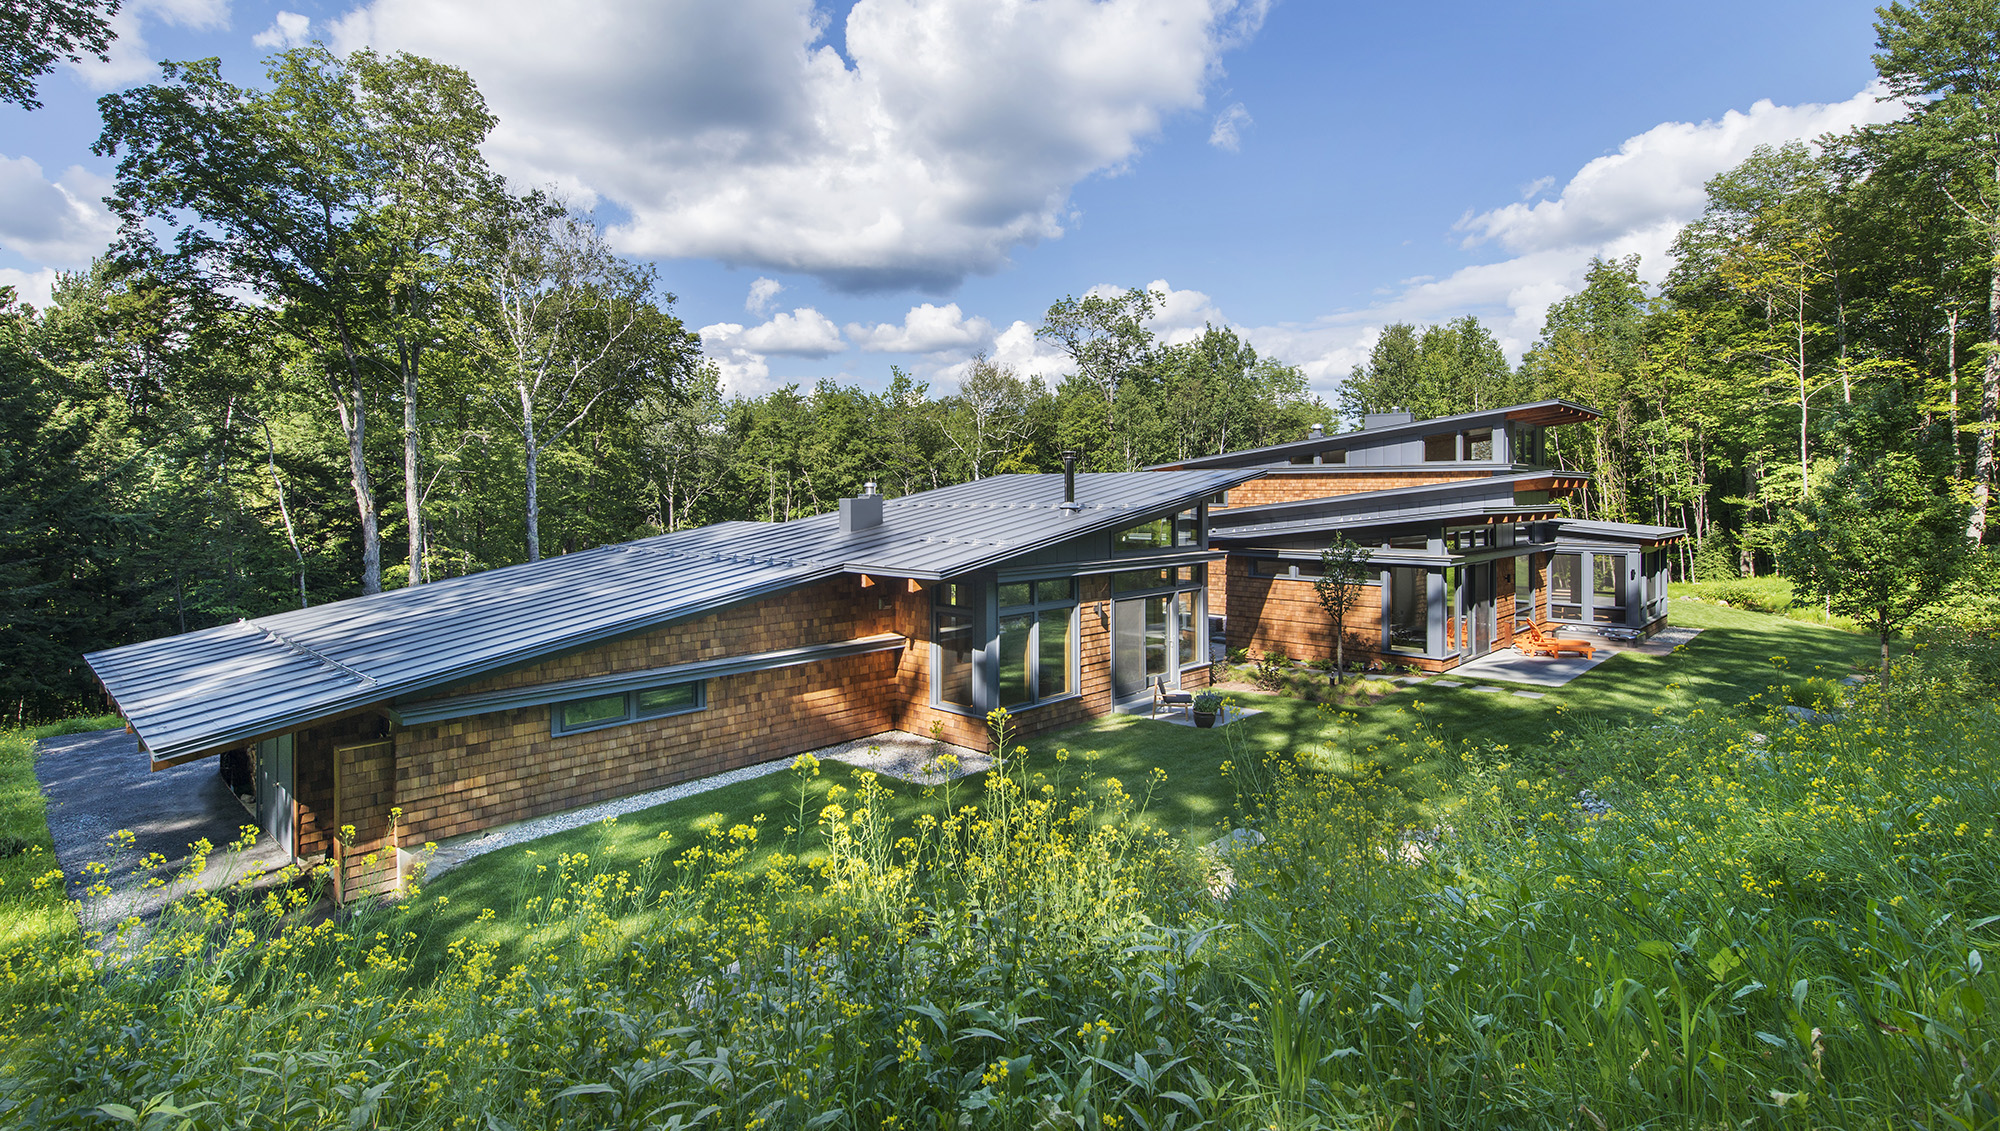 rubber membrane shed roof home in vermont wilderness